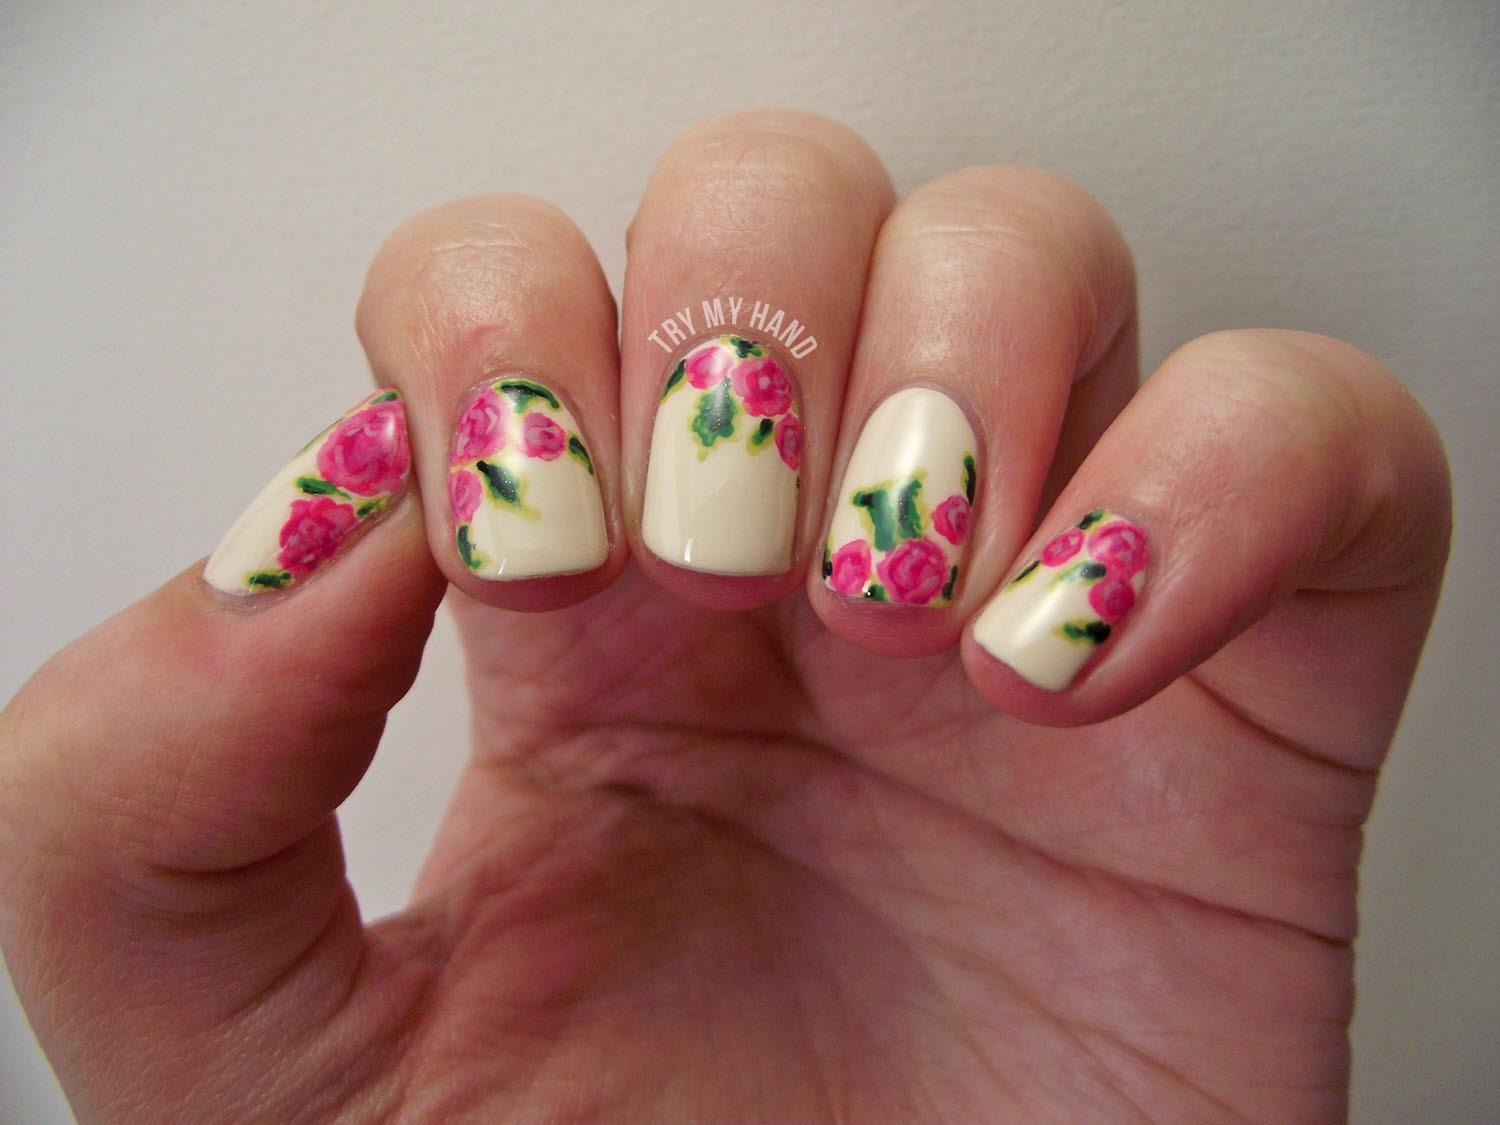 Try my hand tutorial rose floral alphabet nail art challenge tutorial rose floral alphabet nail art challenge solutioingenieria Choice Image